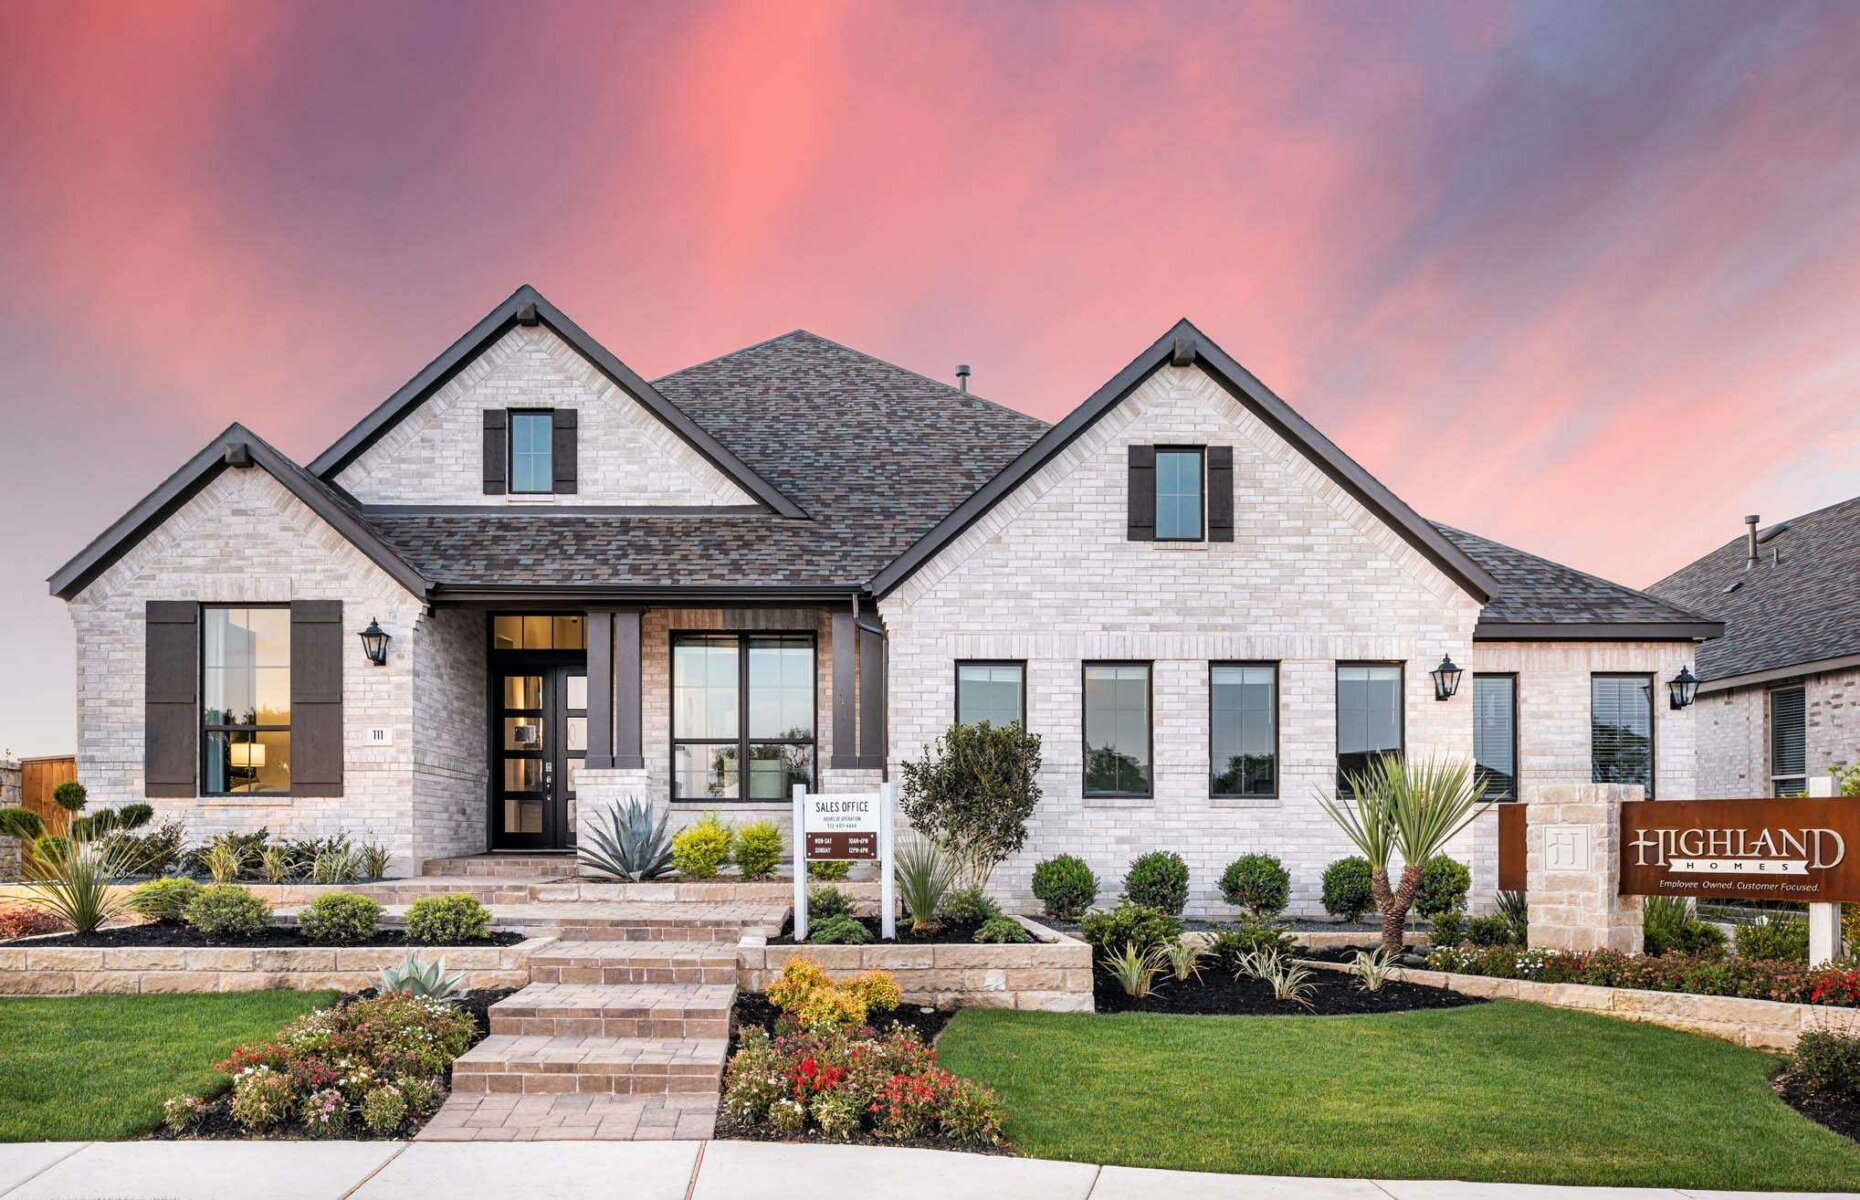 Home cash buyers in Kyle TX